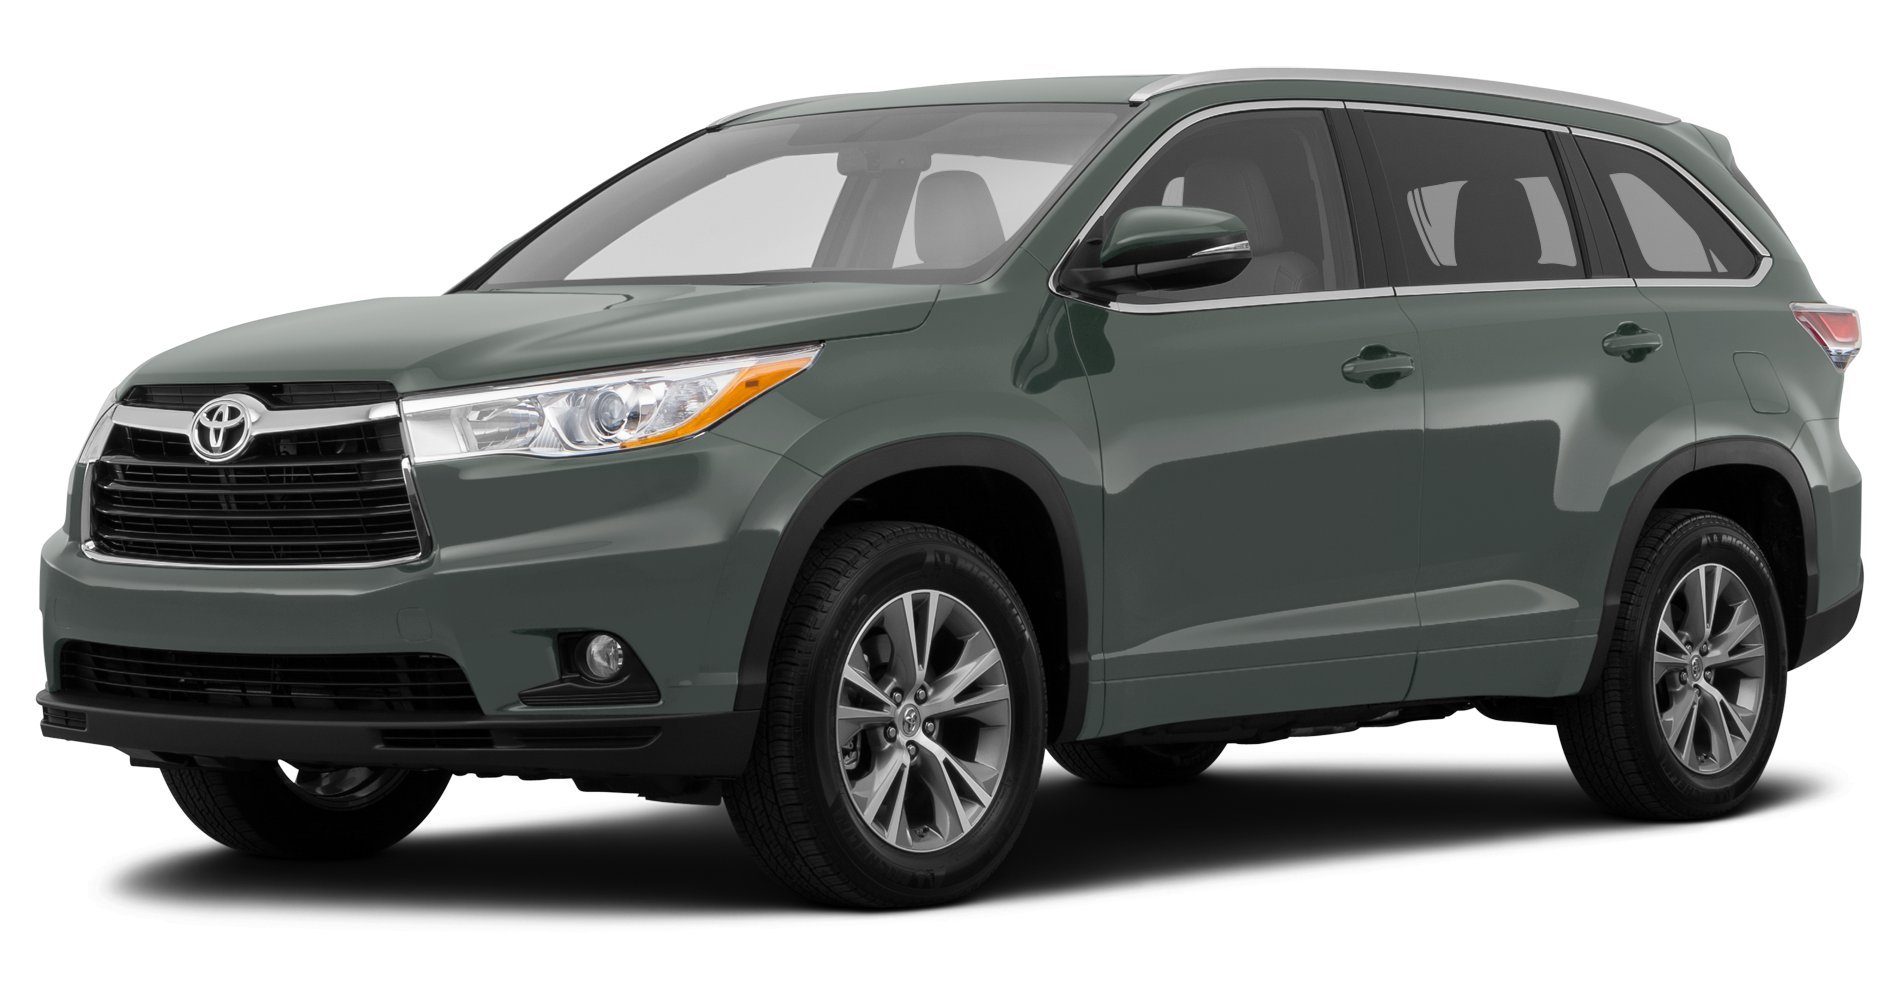 2014 Honda Pilot Reviews Images And Specs Vehicles How To Install Trailer Wiring On 2013 Pathfinder Autos Weblog Toyota Highlander Le Plus Front Wheel Drive 4 Door V6 Se